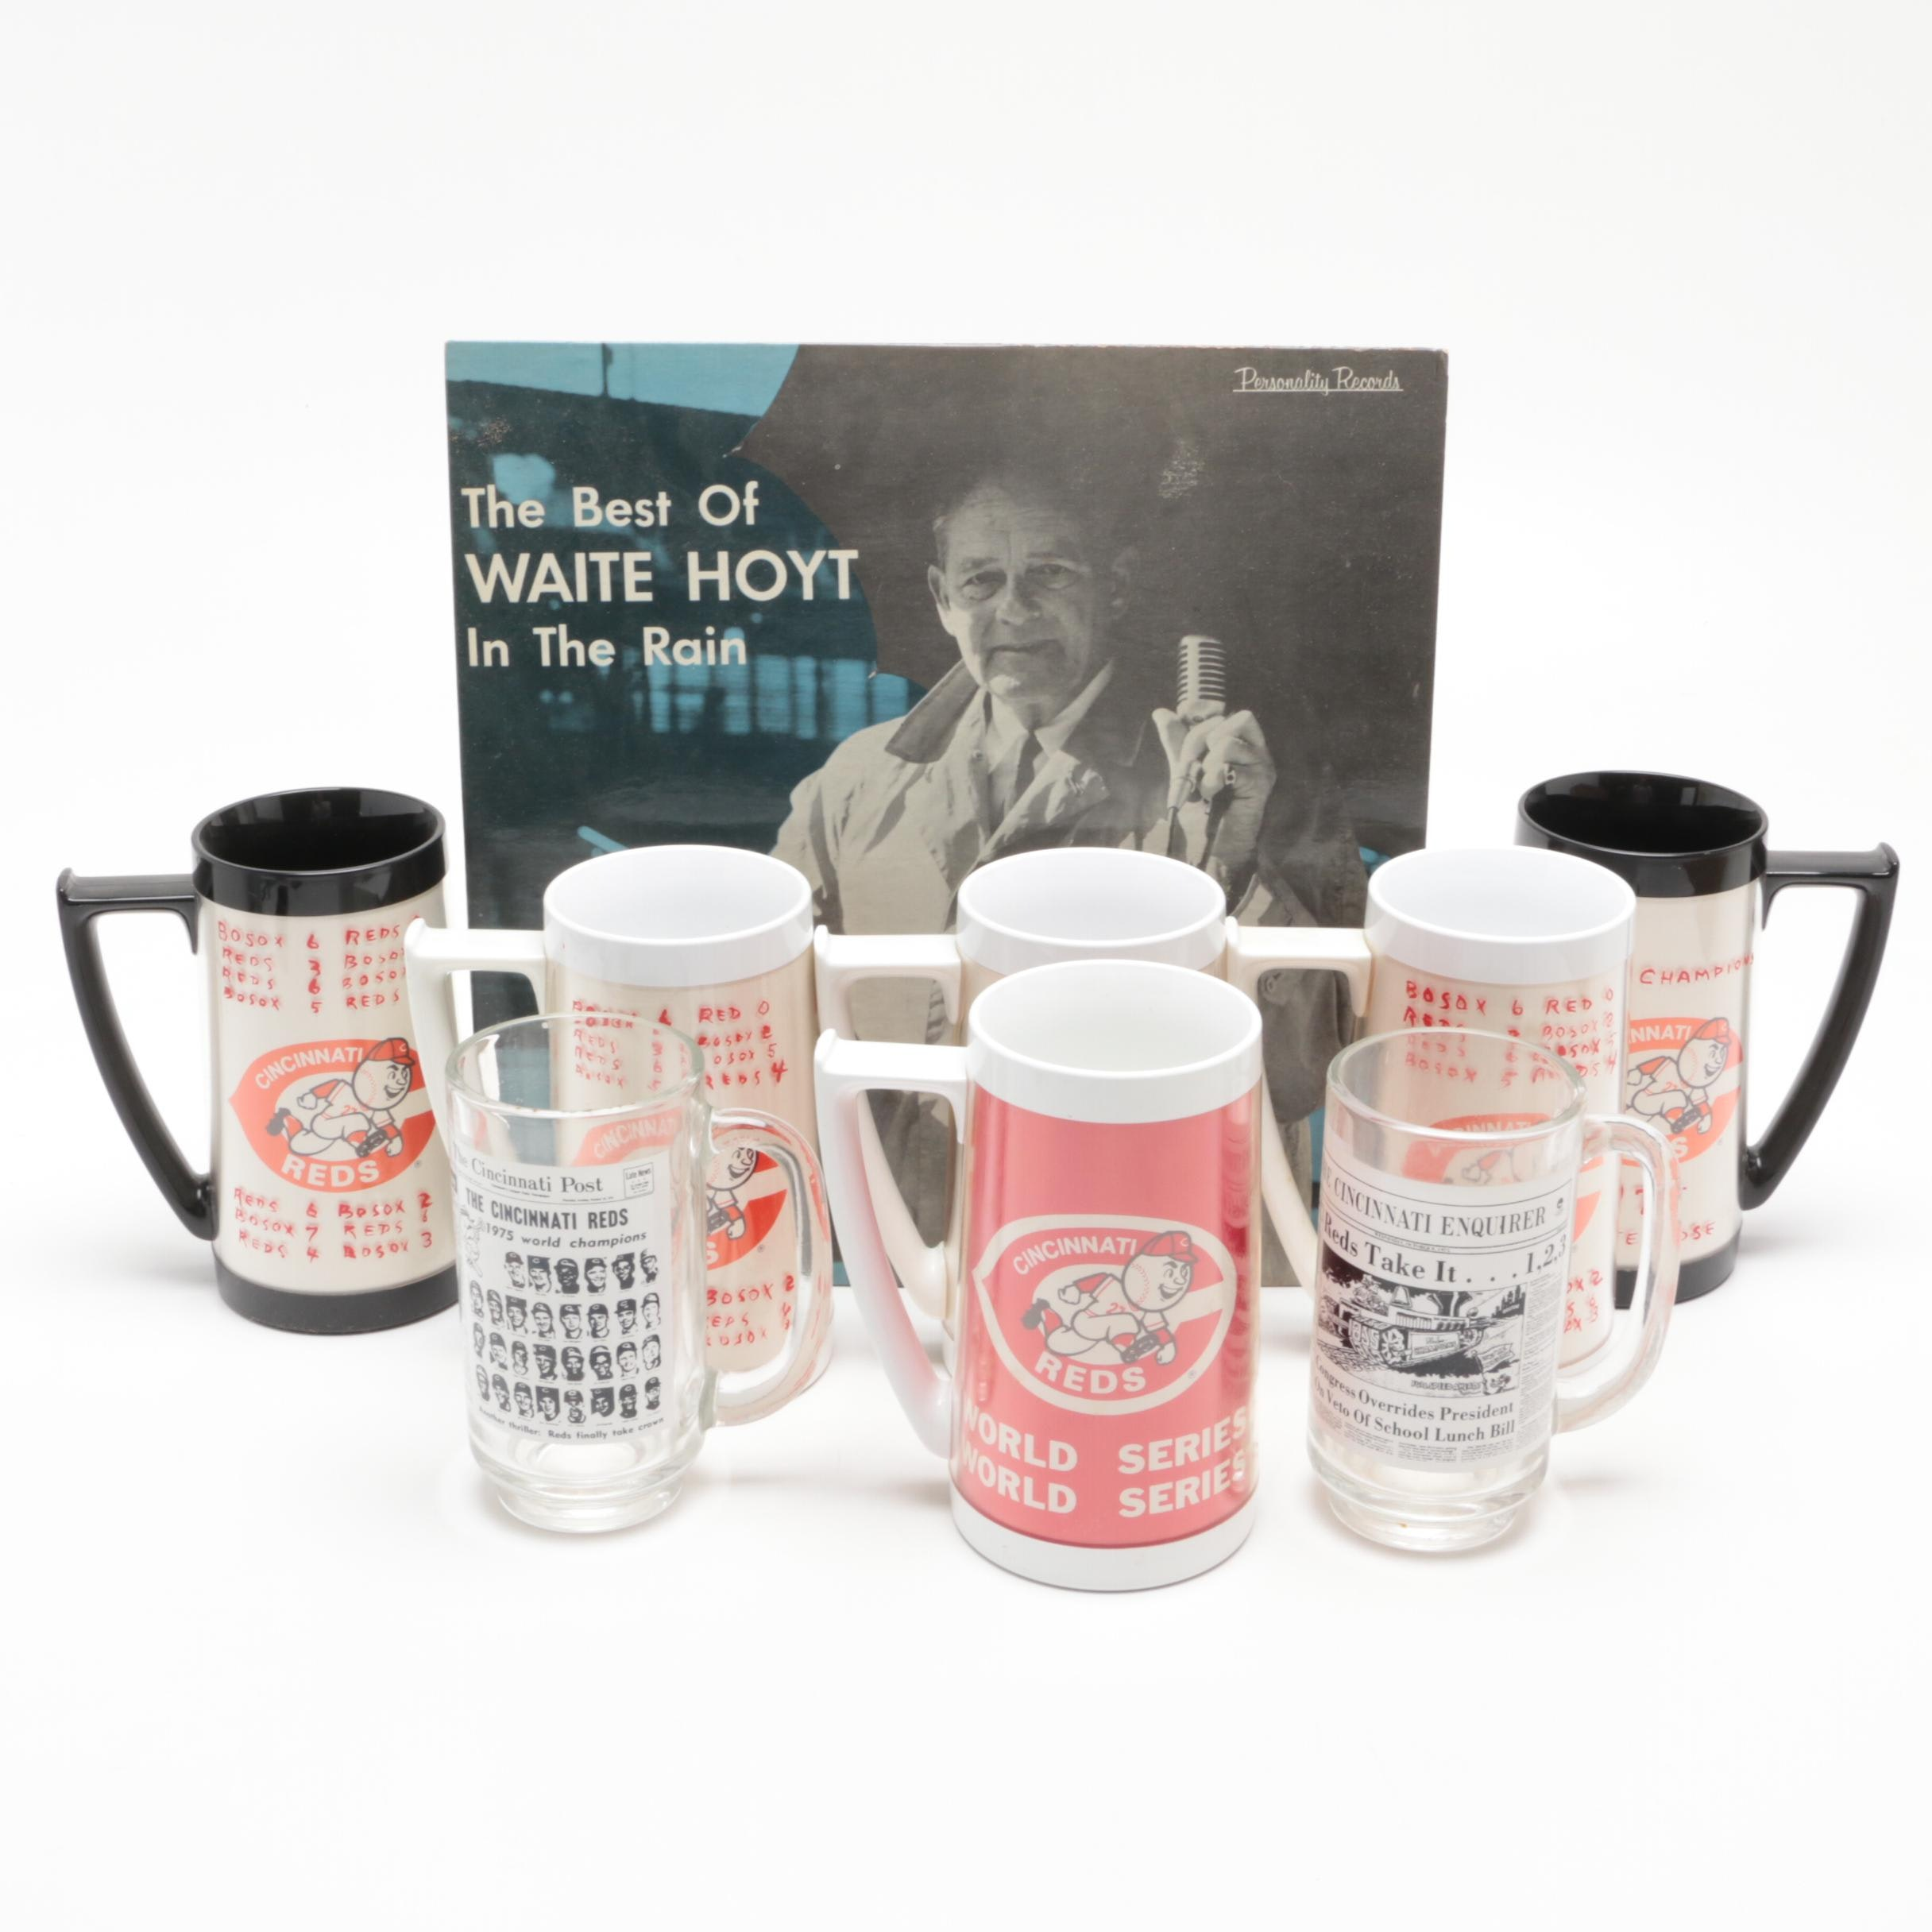 1970s Cincinnati Reds Drinking Mugs/Glasses with Waite Hoyt Burger Beer Album